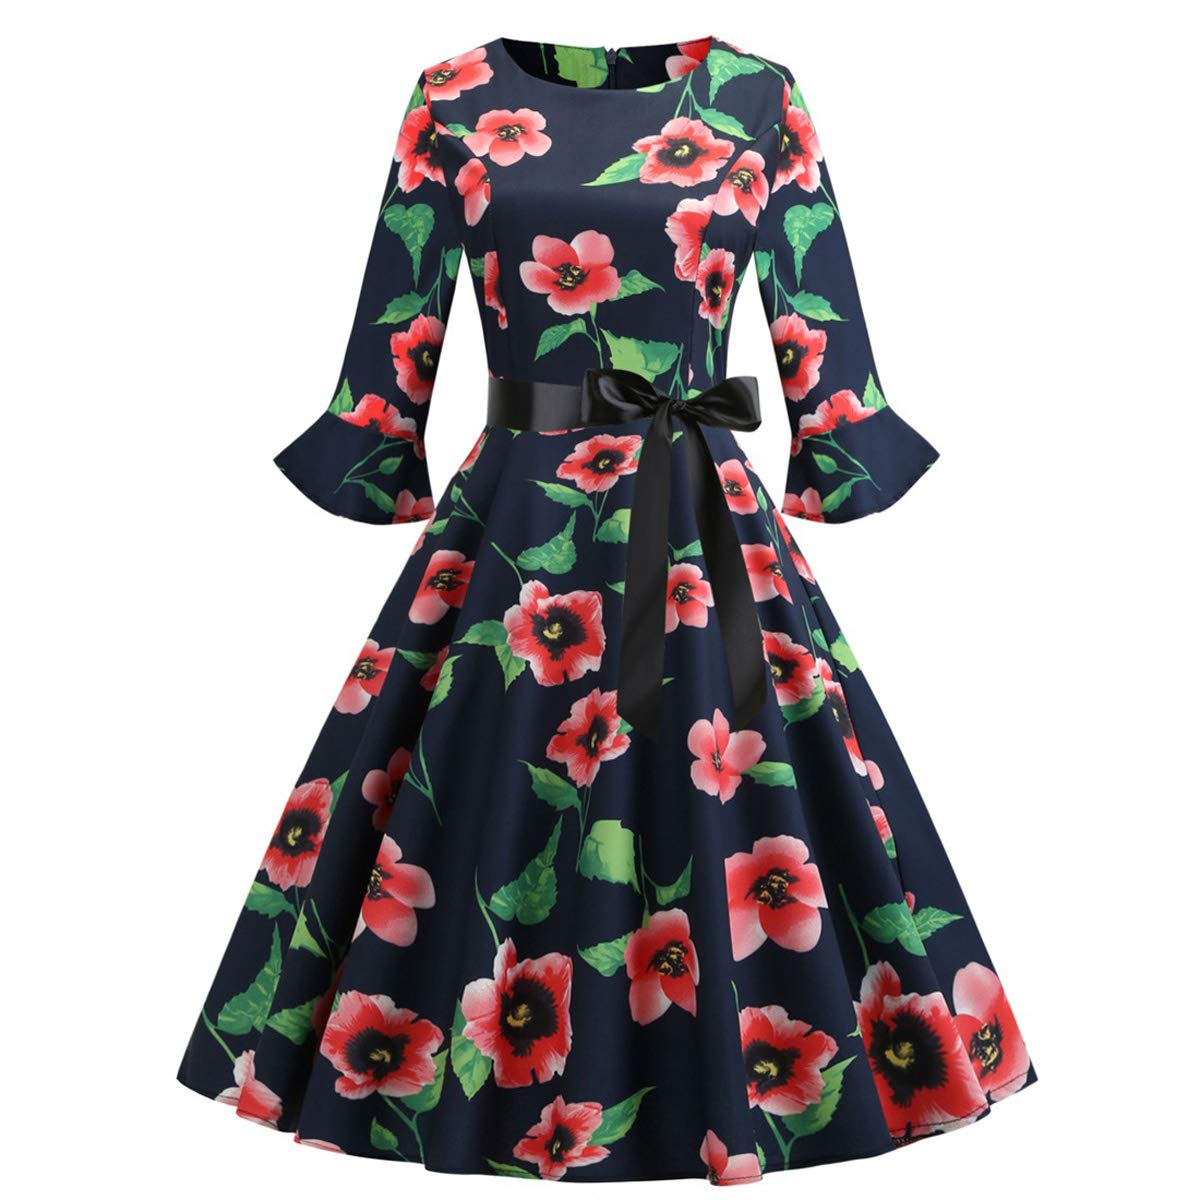 Women's Retro Printing Evening Dress Floral Printed Round Neck 3/4 Sleeve Banquet Casual Party Dress Plus Size Fmeijia Red